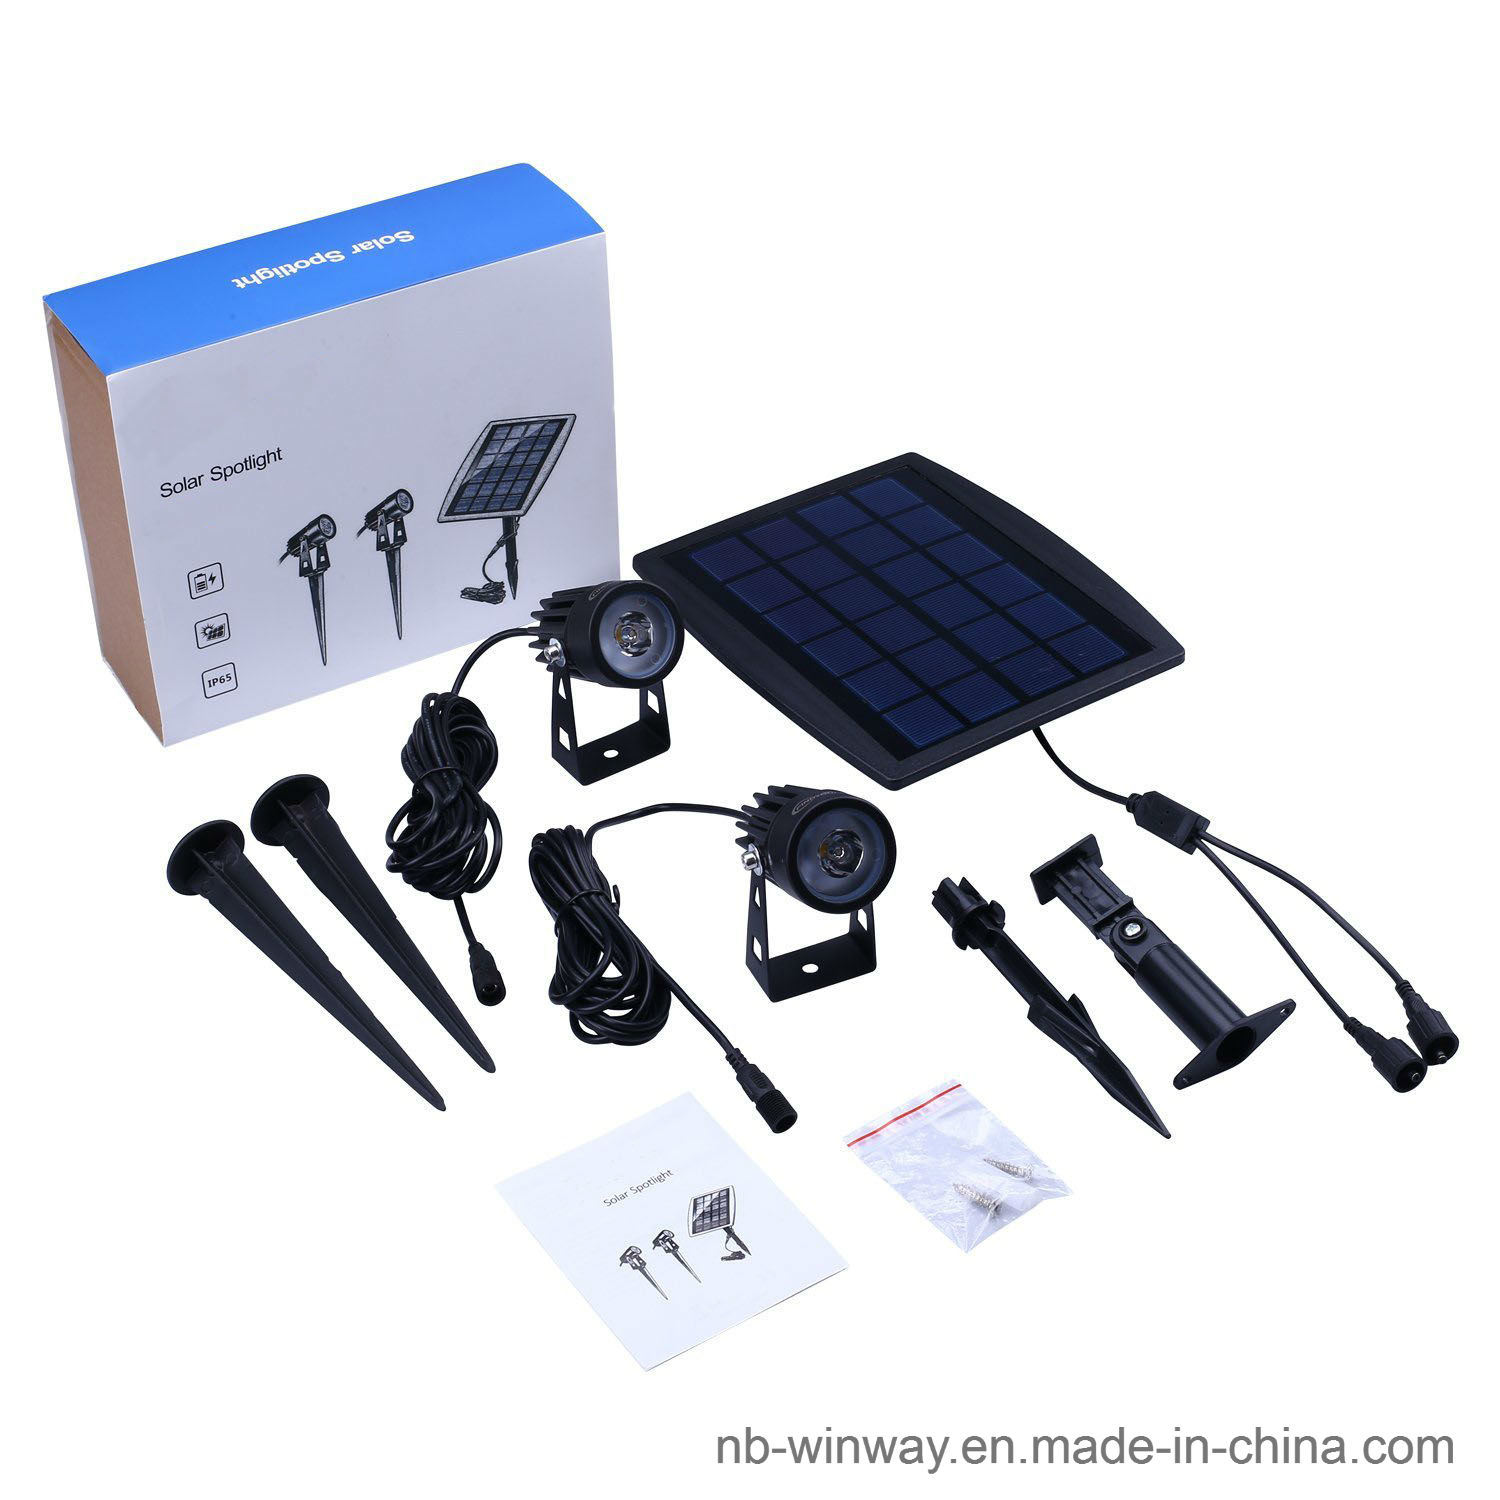 Solar Powered Twin Outdoor Spotlight for Garden